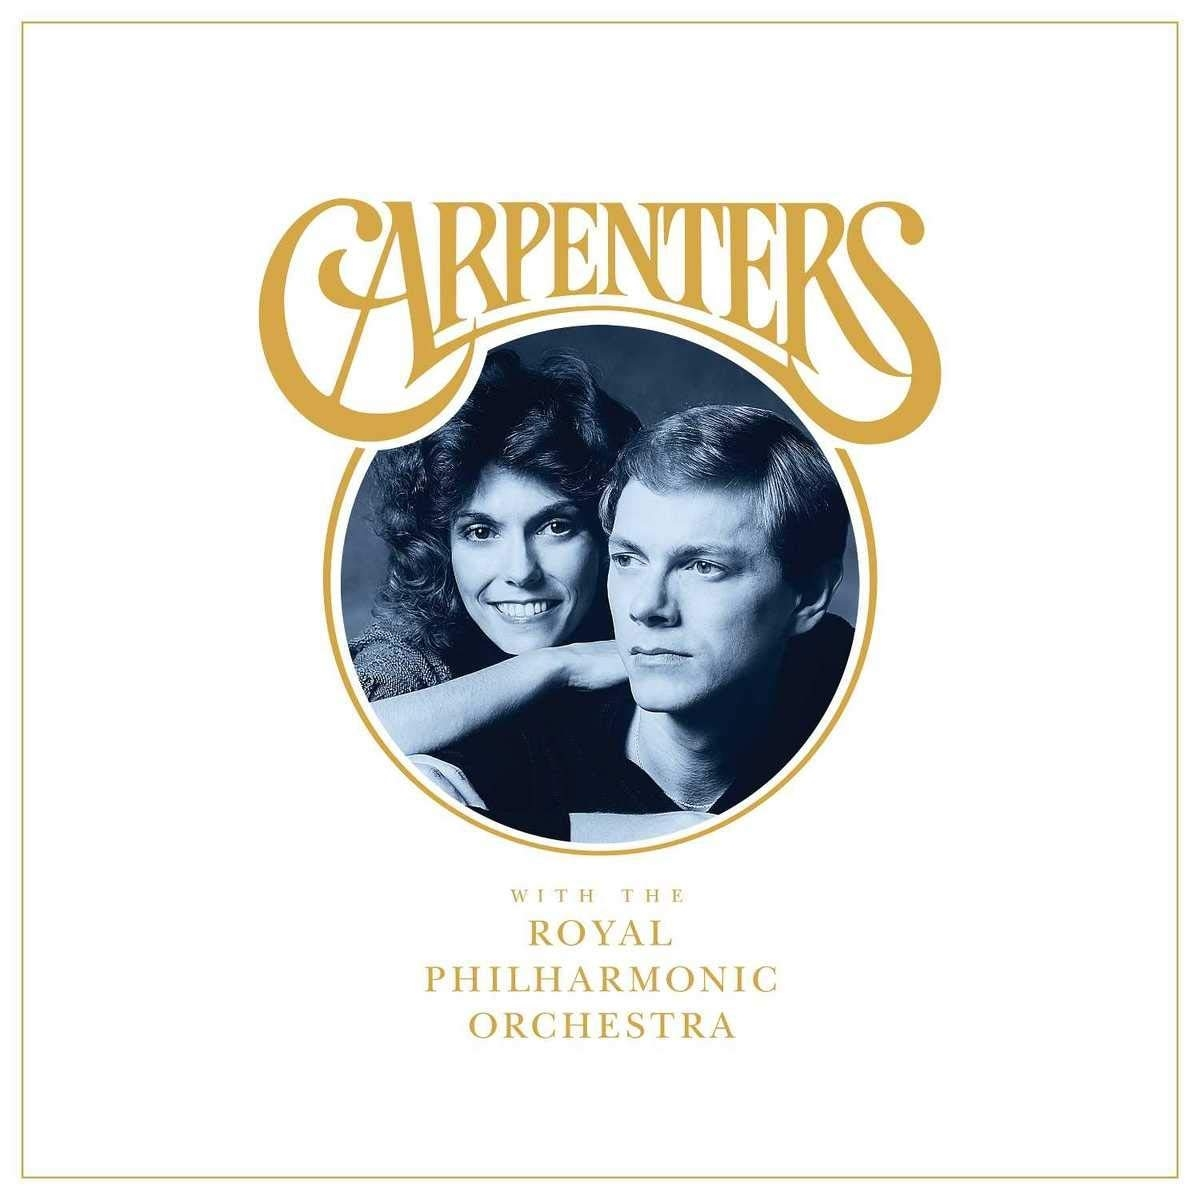 catalog 02 19 Carpenters RoyPhil